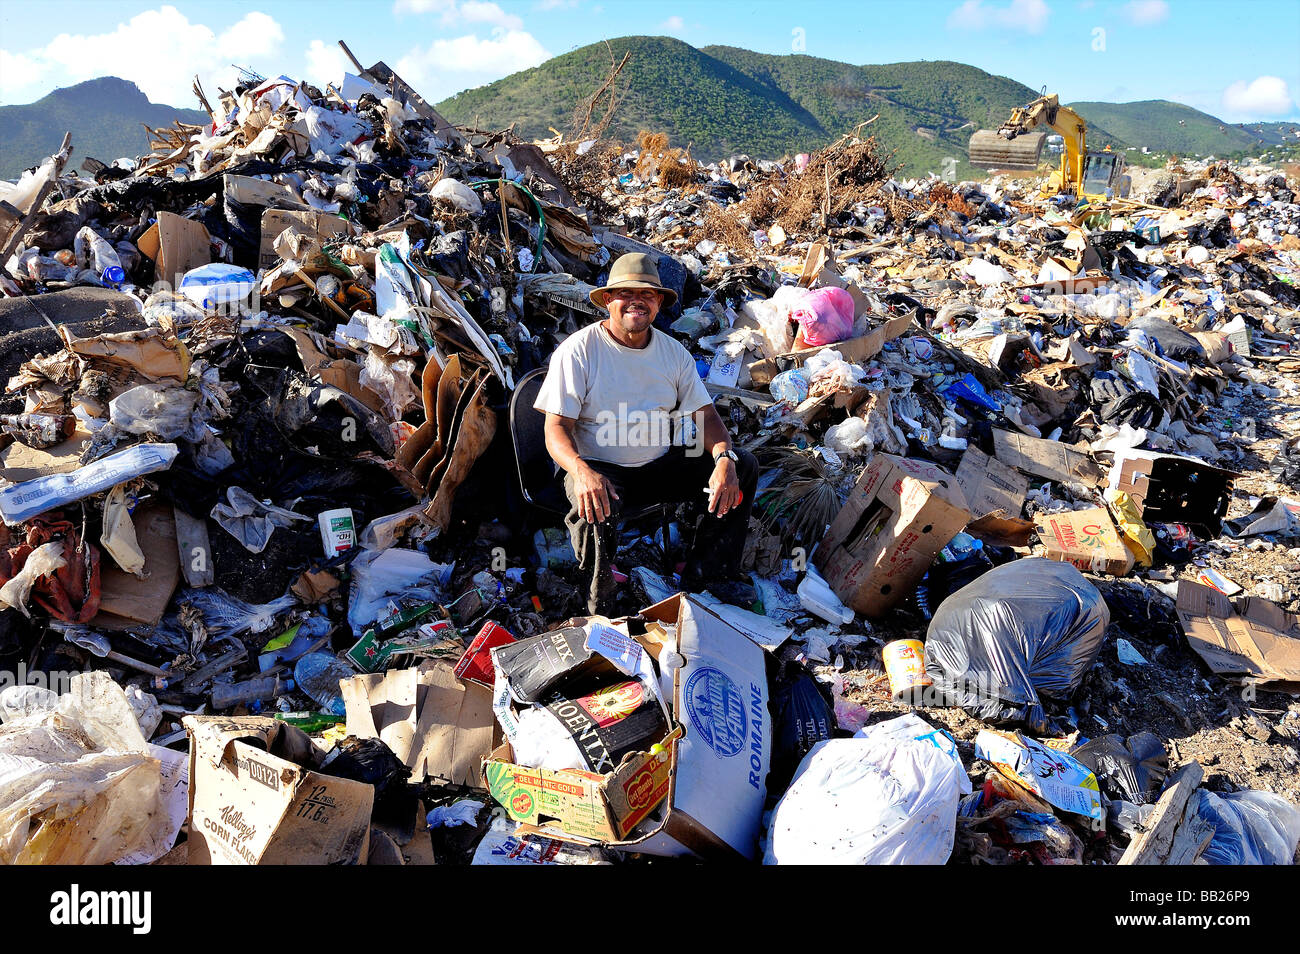 sint maarten the great salt pond landfill is used as a garbage dump stock photo 24020817 alamy. Black Bedroom Furniture Sets. Home Design Ideas